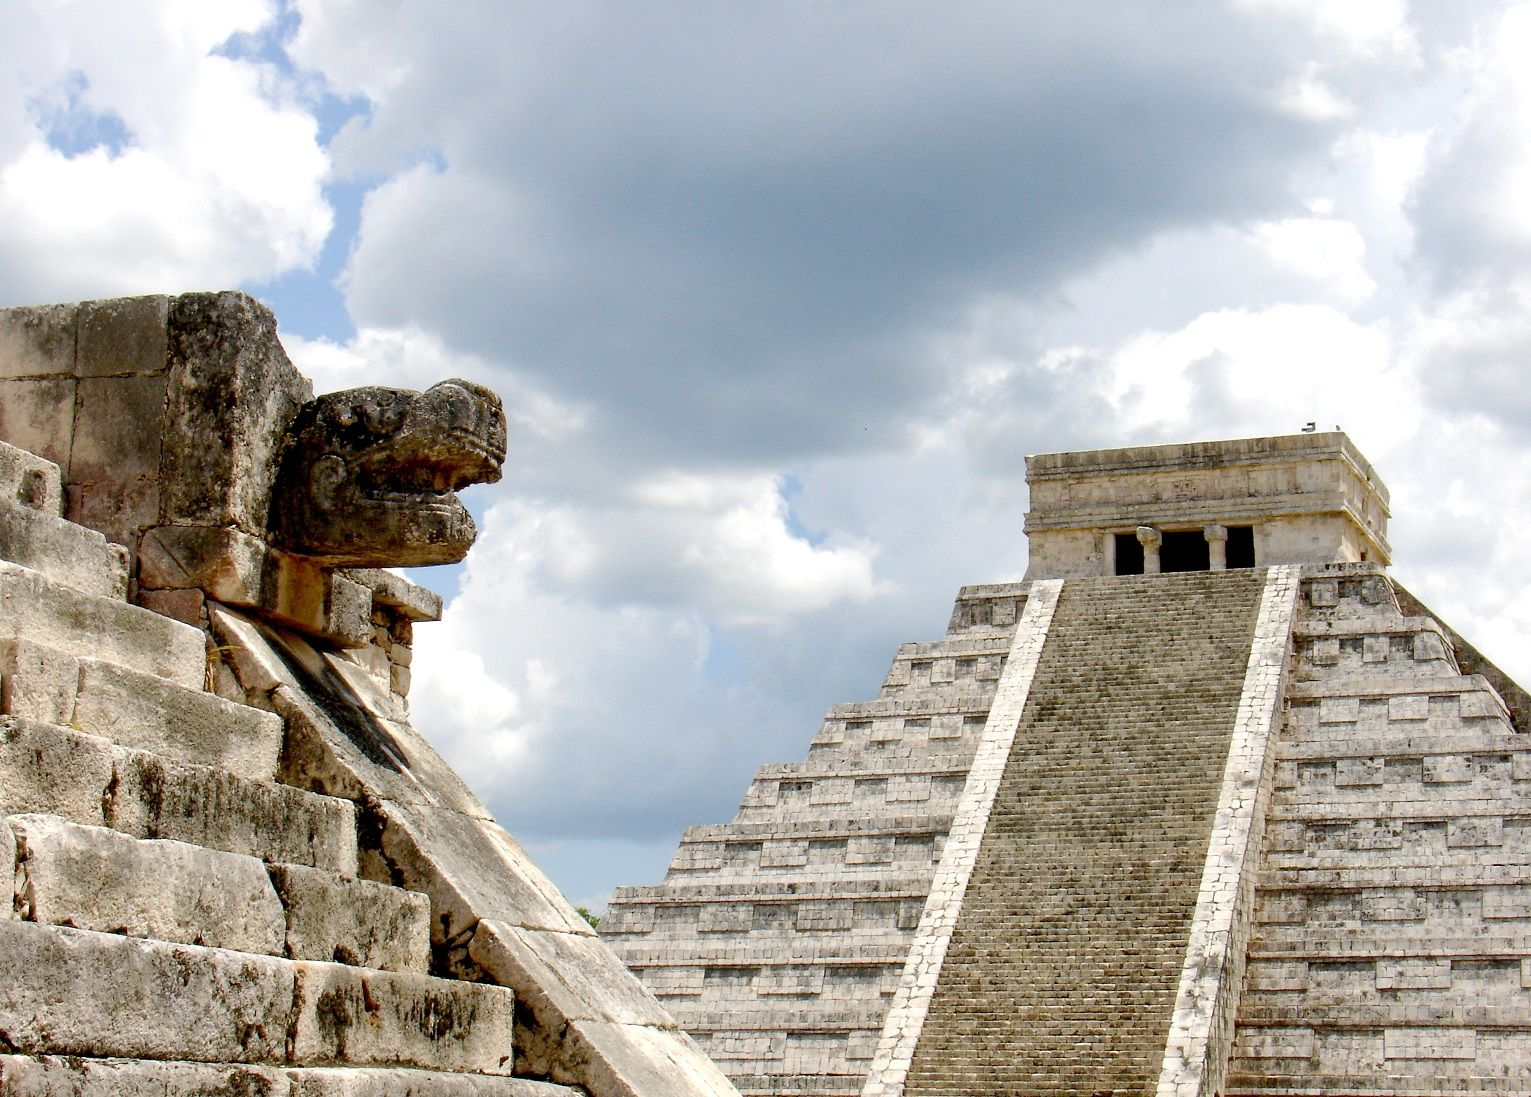 State of Yucatán: Two Years of Sustained Growth